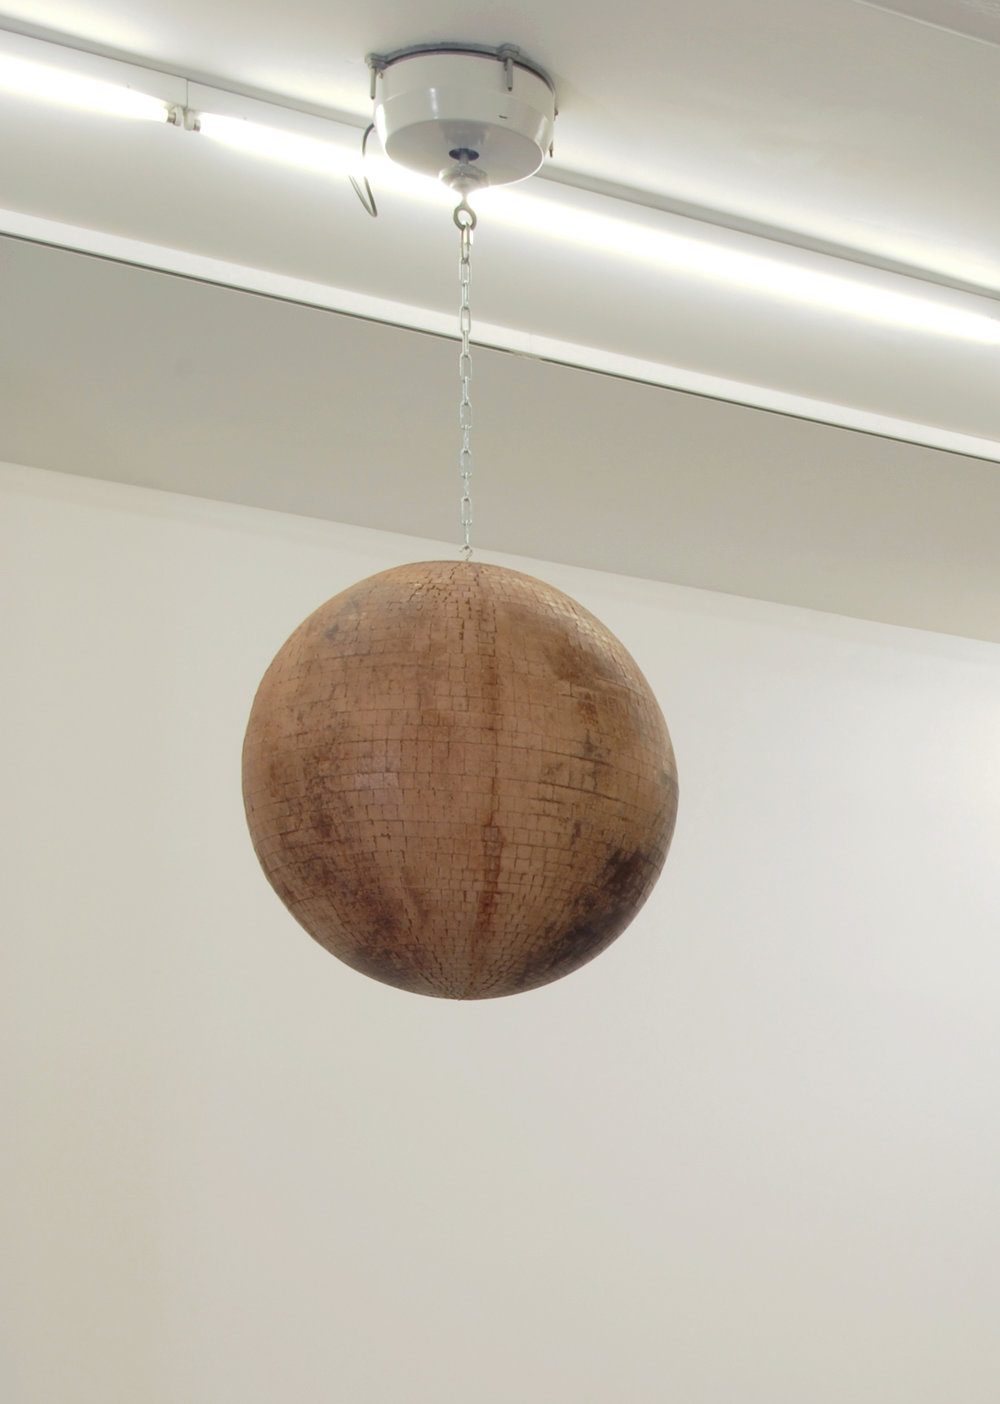 Kelley Walker,  Circle in Circle,  2006, cast chocolate, motor, chain, 61 cm